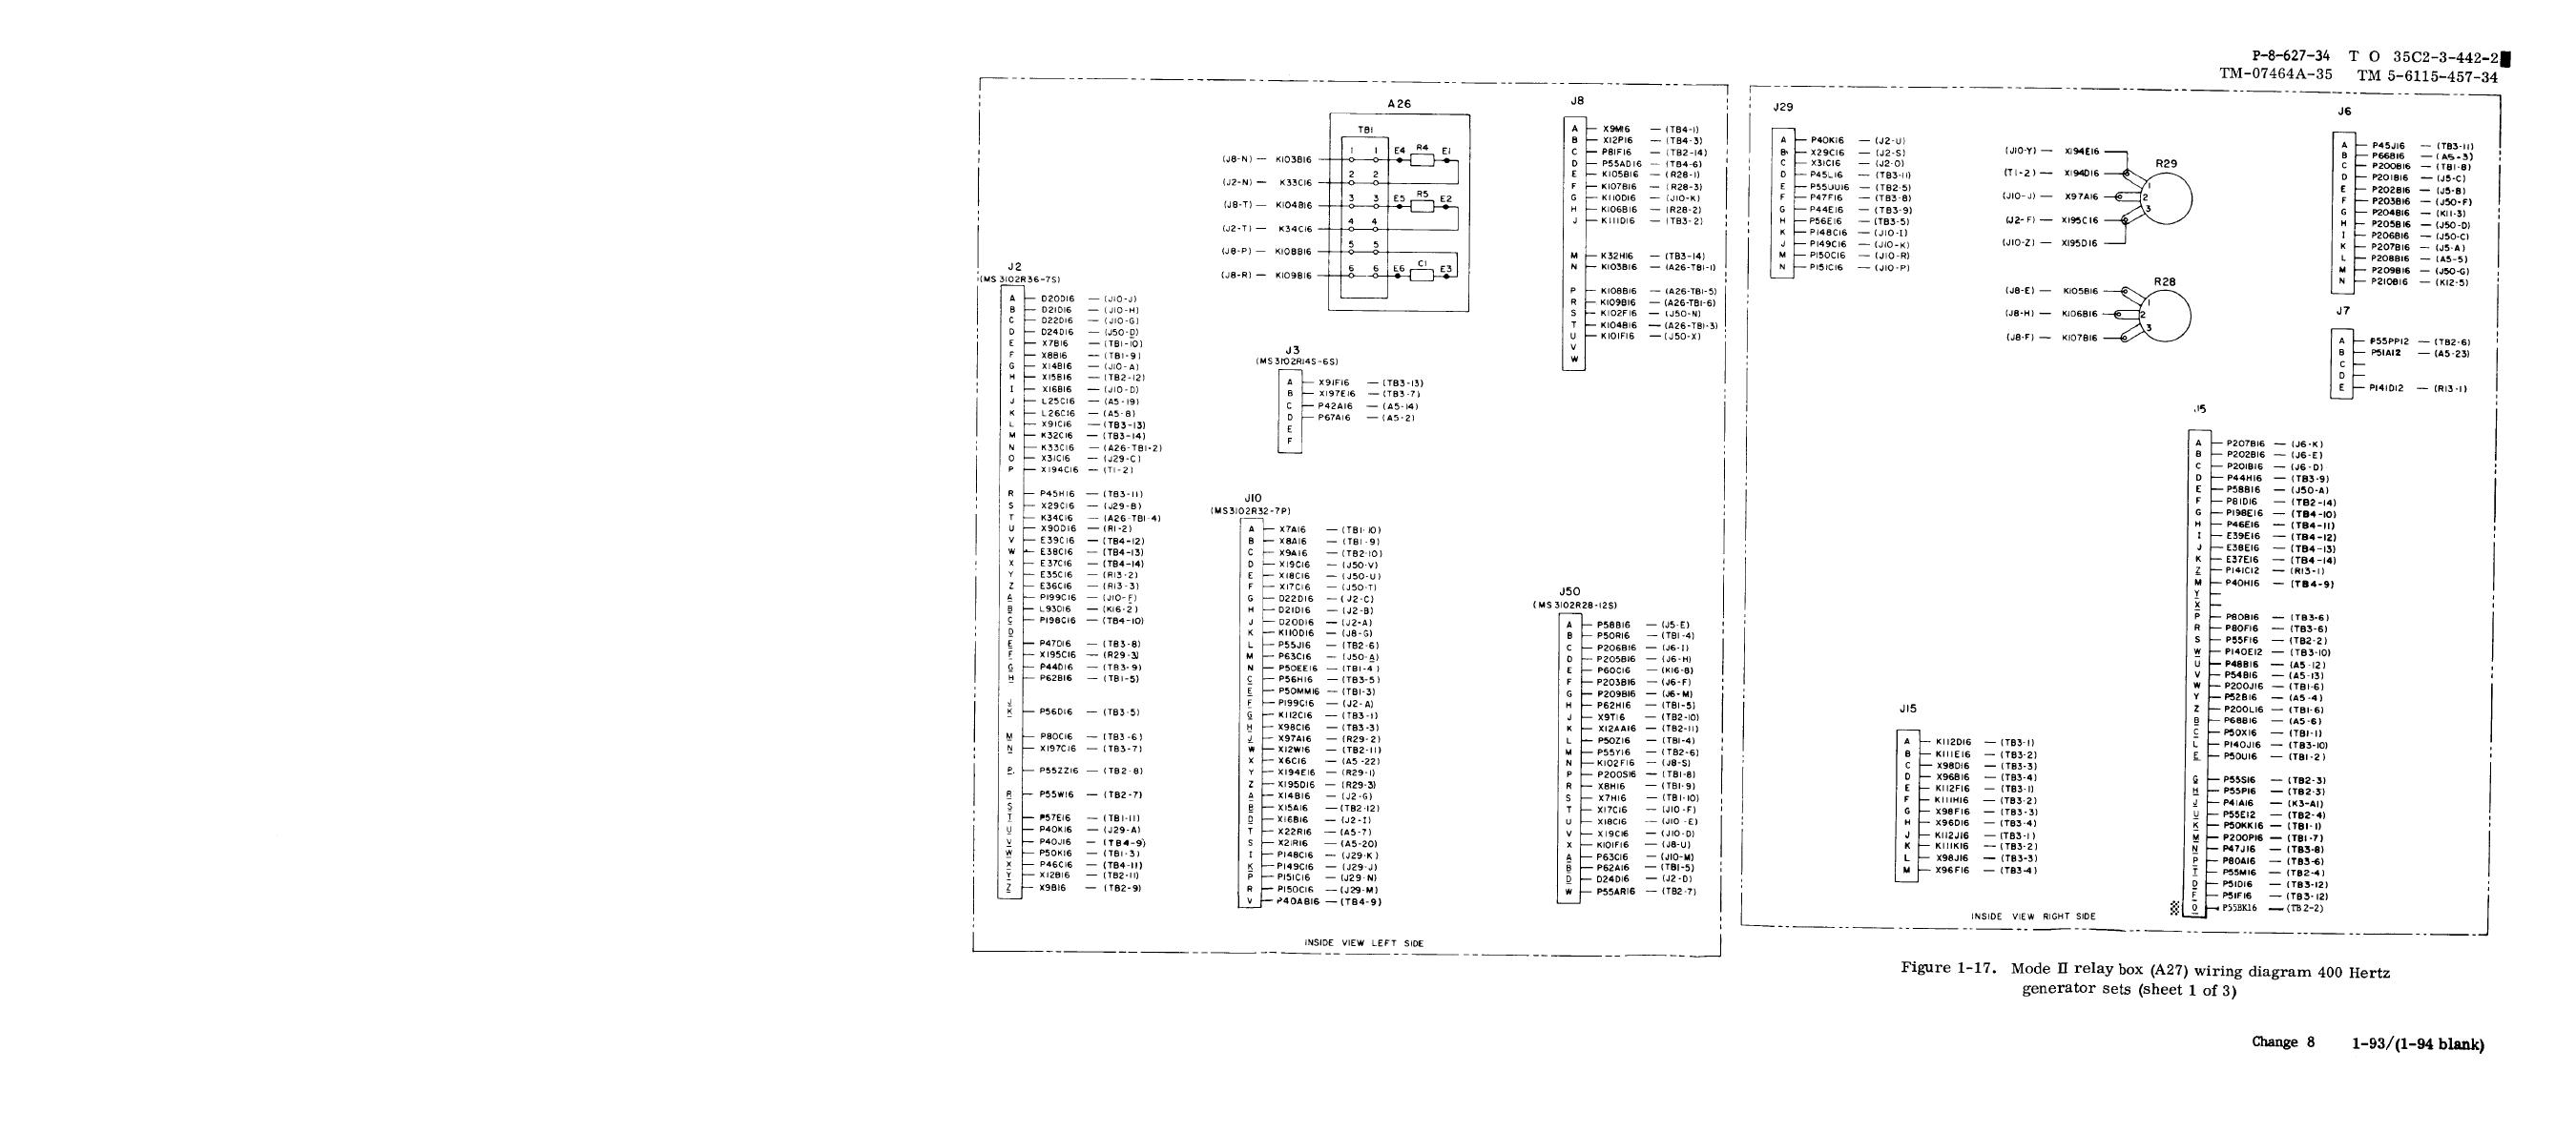 Figure 1 17 Mode Ii Relay Box A27 Wiring Diagram 400 Hertz 120 240v Generator Tm 5 6115 457 34 Set Diesel Engine Driven Tactical Skid Mtd 100 Kw 3 Phase 4 Wire 208 And 240 416 Volts Manual Page Navigation